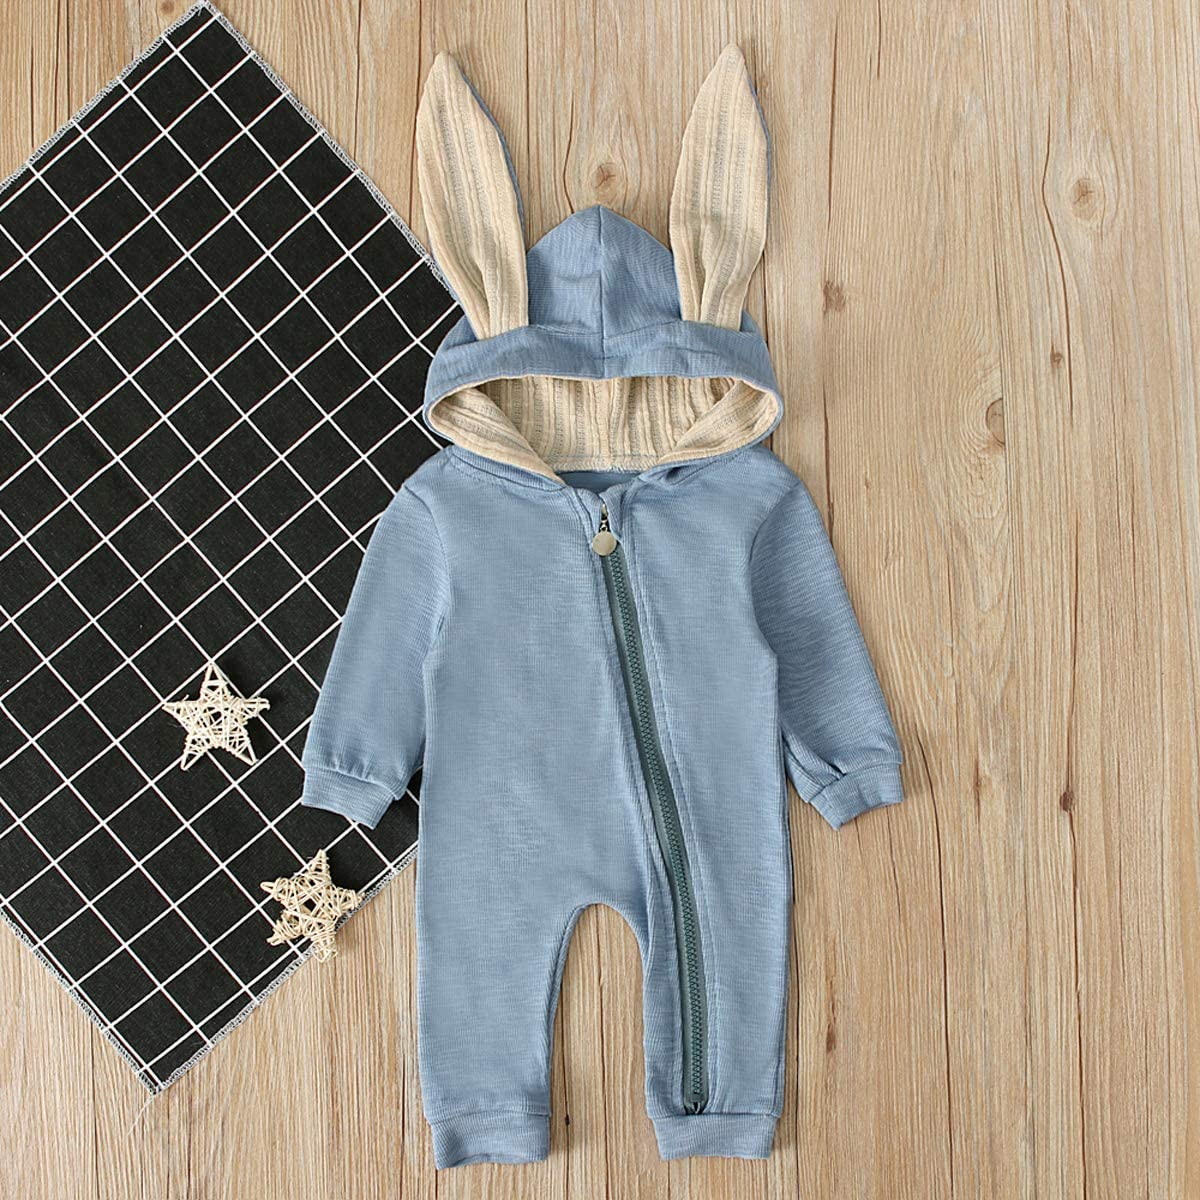 Toddler Baby Boy Girl Long Sleeve Jumpsuits Hooded Bunny Ears Fleece Romper Fall Winter Clothes Outfits Set